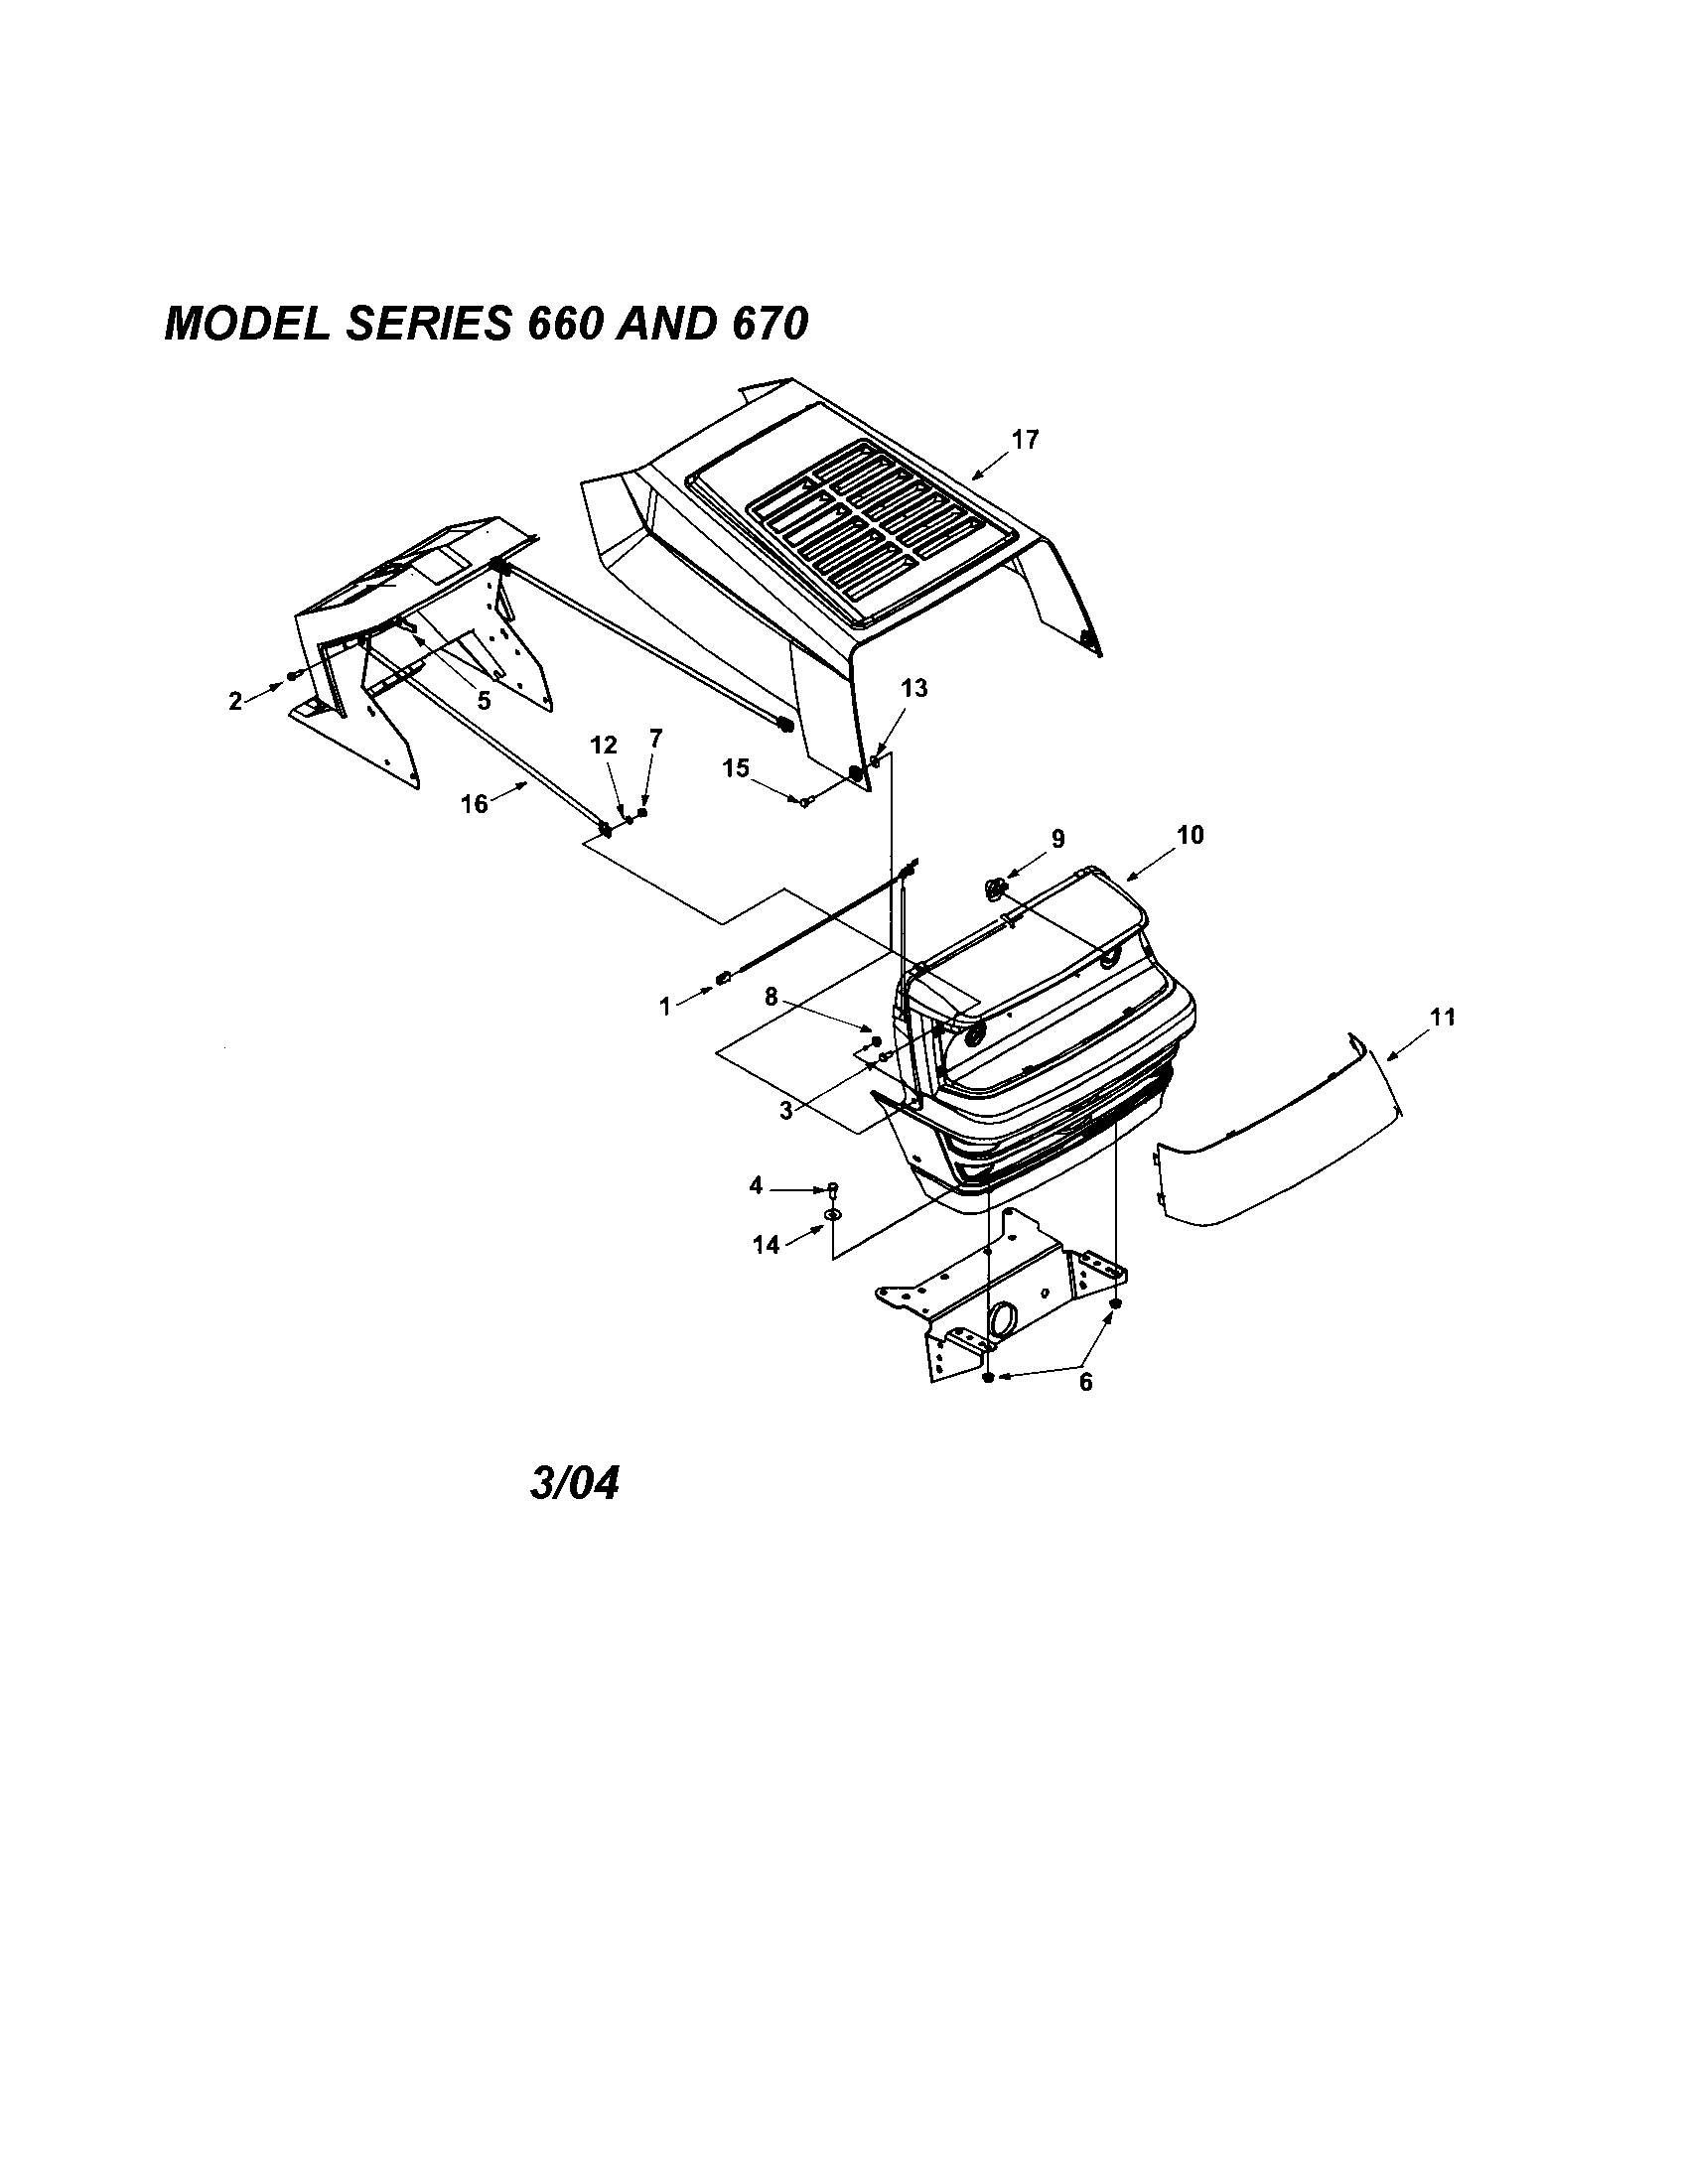 Mtd model 13AF675G062 lawn, tractor genuine parts